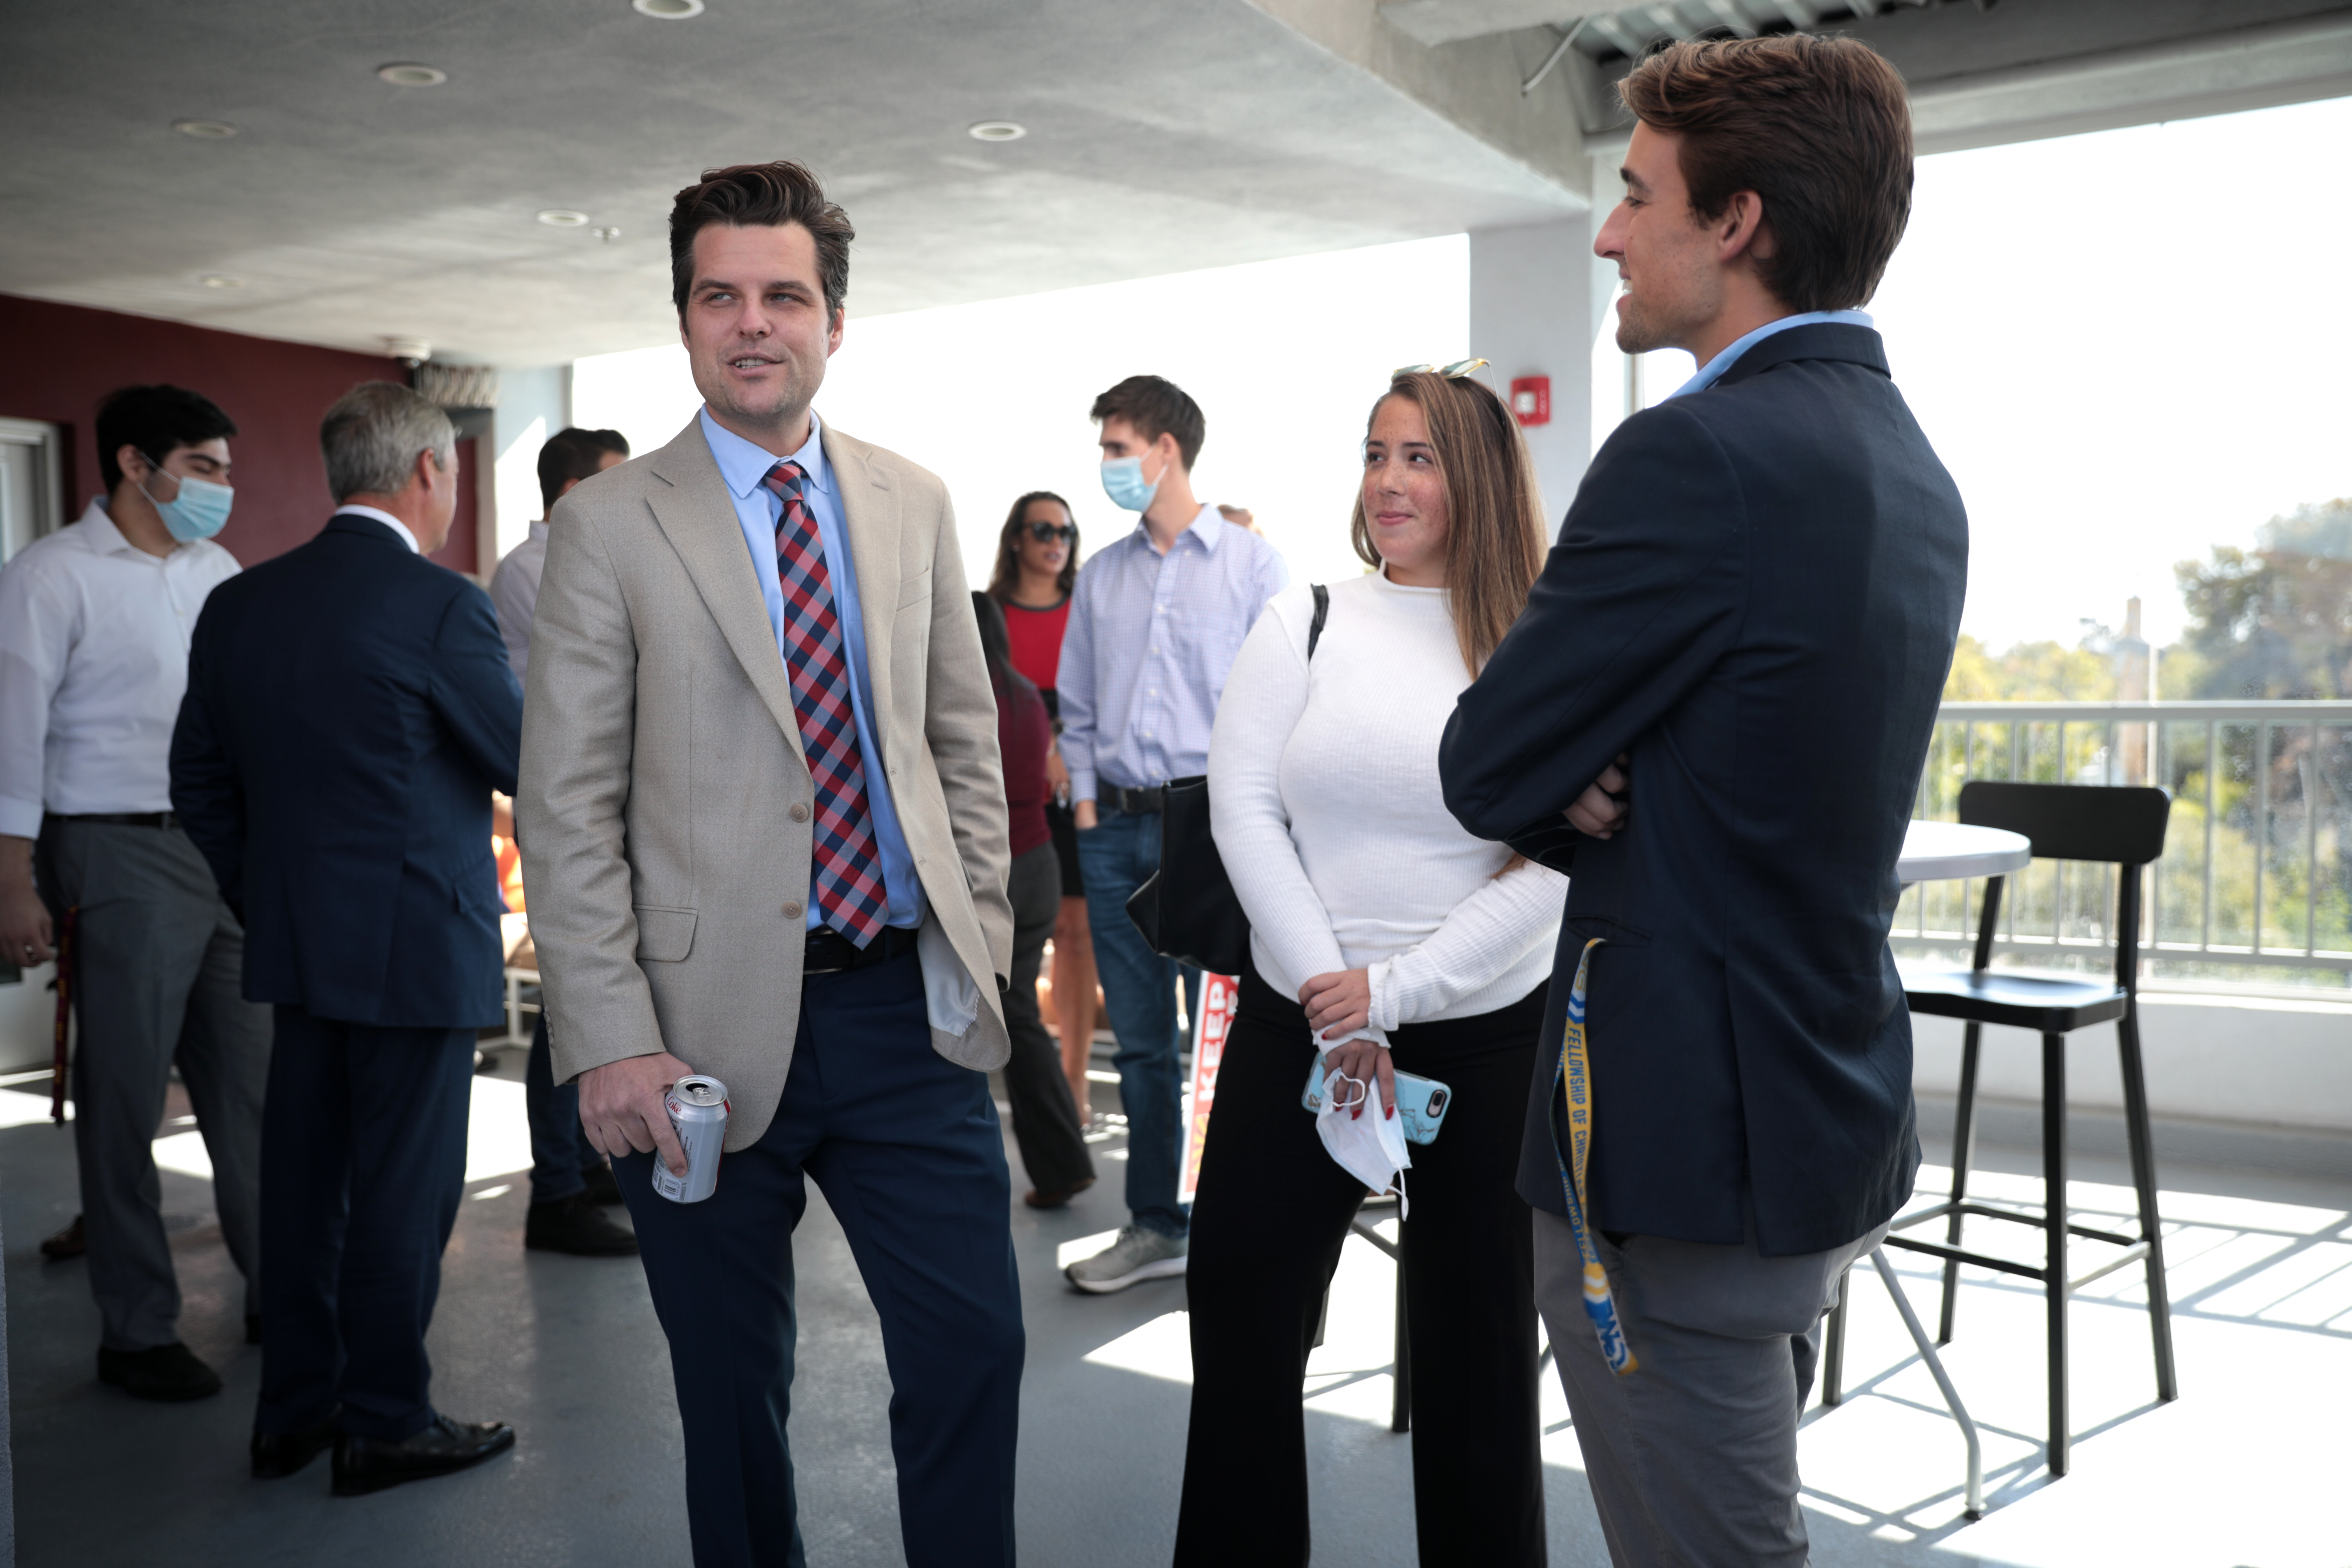 House Ethics Committee opens investigation into Rep. Gaetz